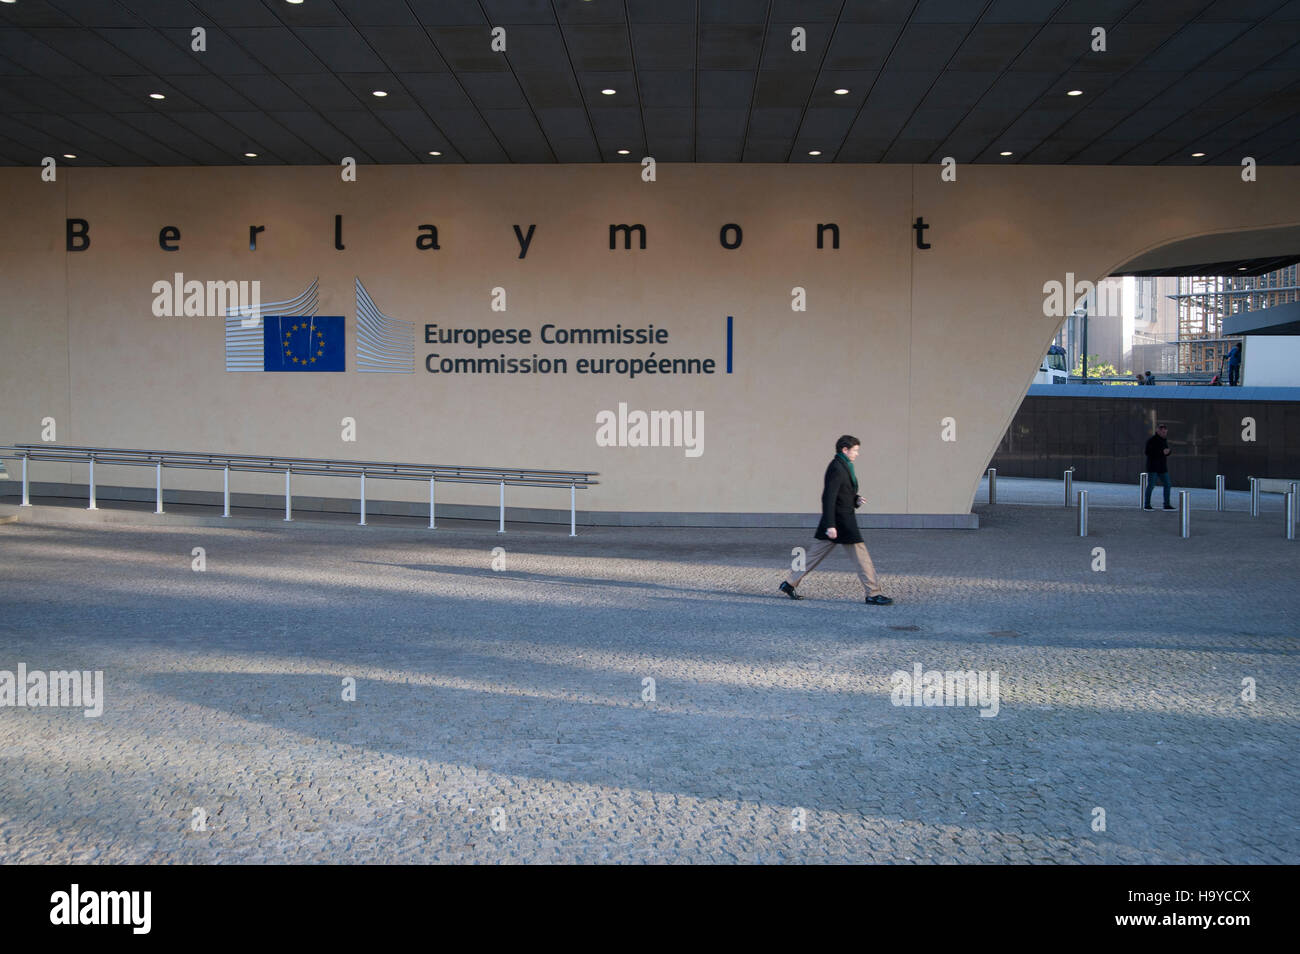 View of the the Berlaymont building, siege of the European Commission in Brussels. Belgium - Stock Image